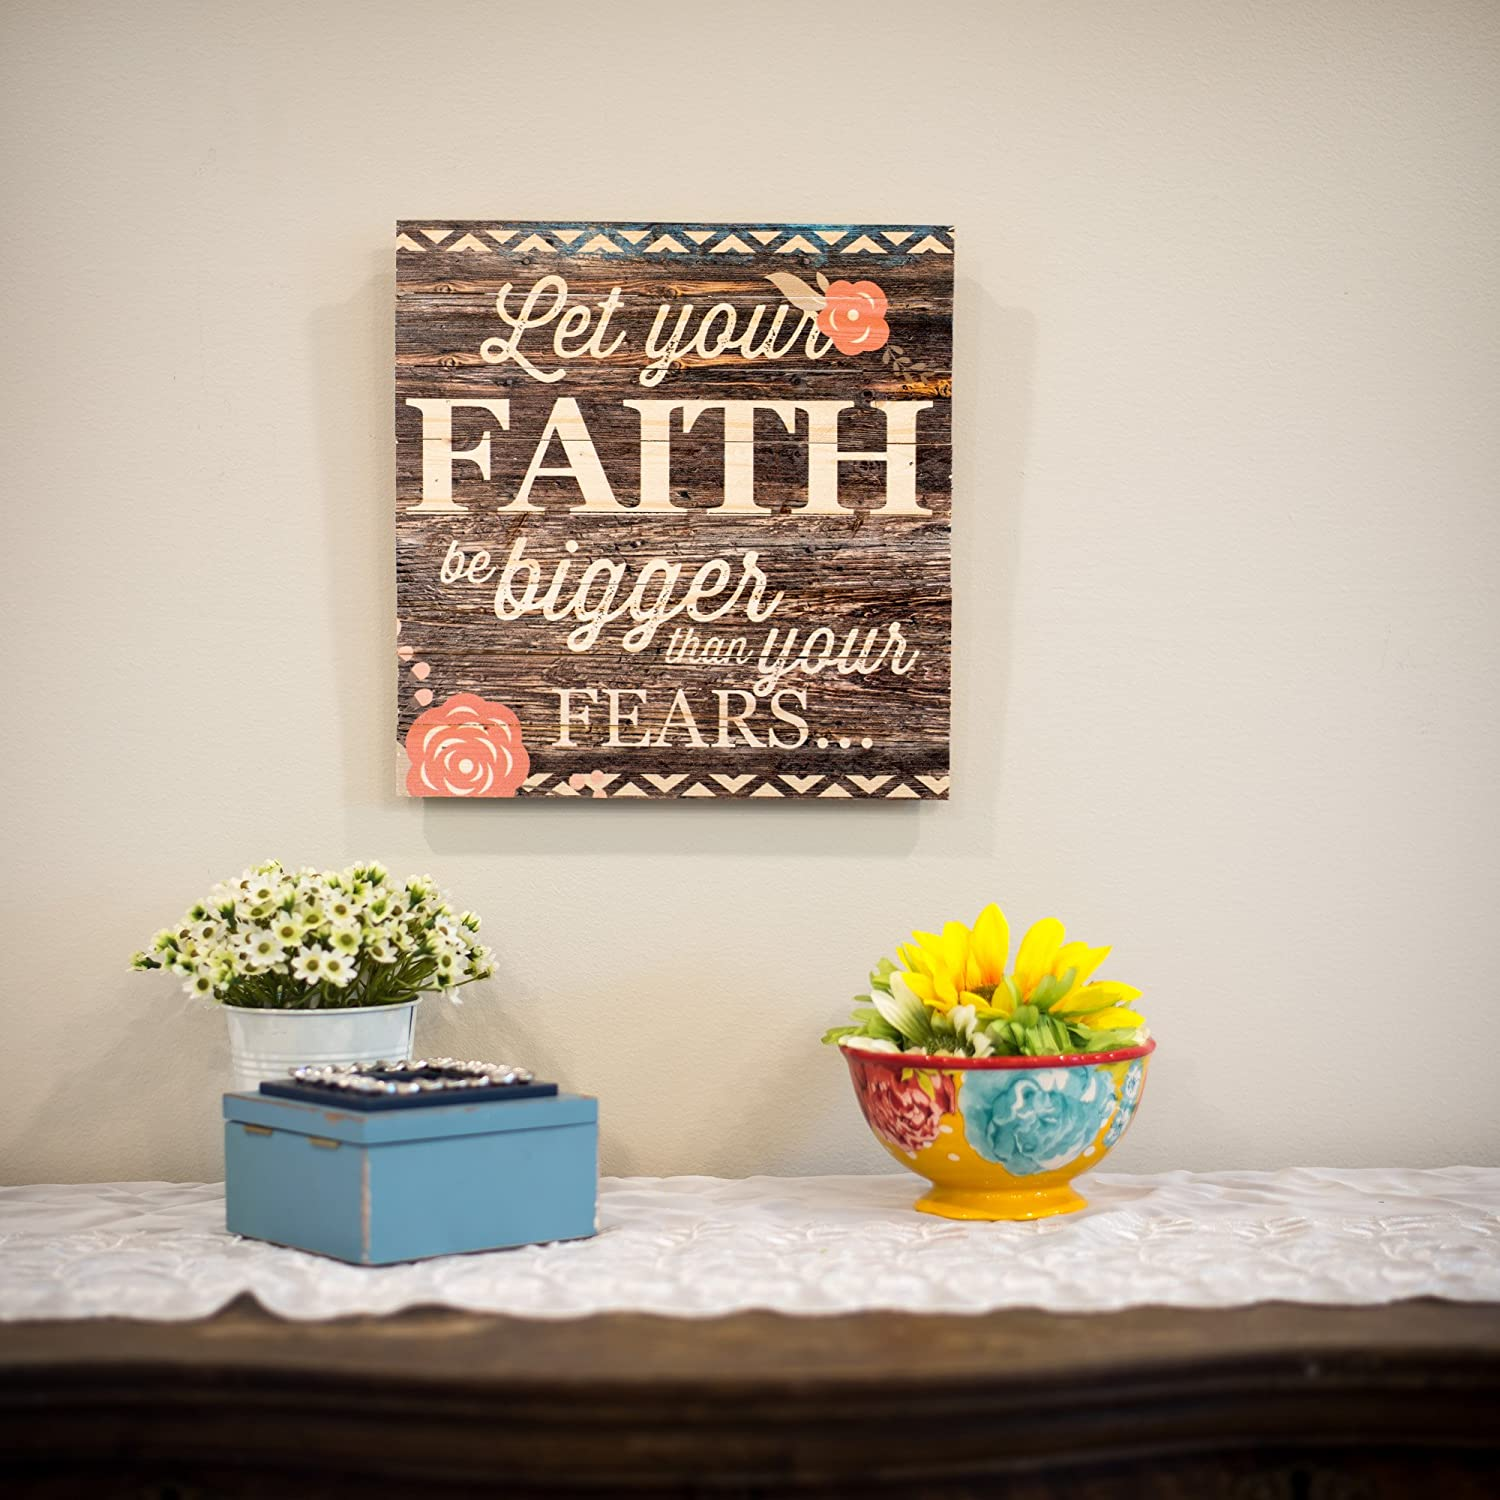 P Graham Dunn Let Your Faith Be Bigger Than Your Fears/… 12 x 12 inch Pine Wood Plank Wall Sign Plaque